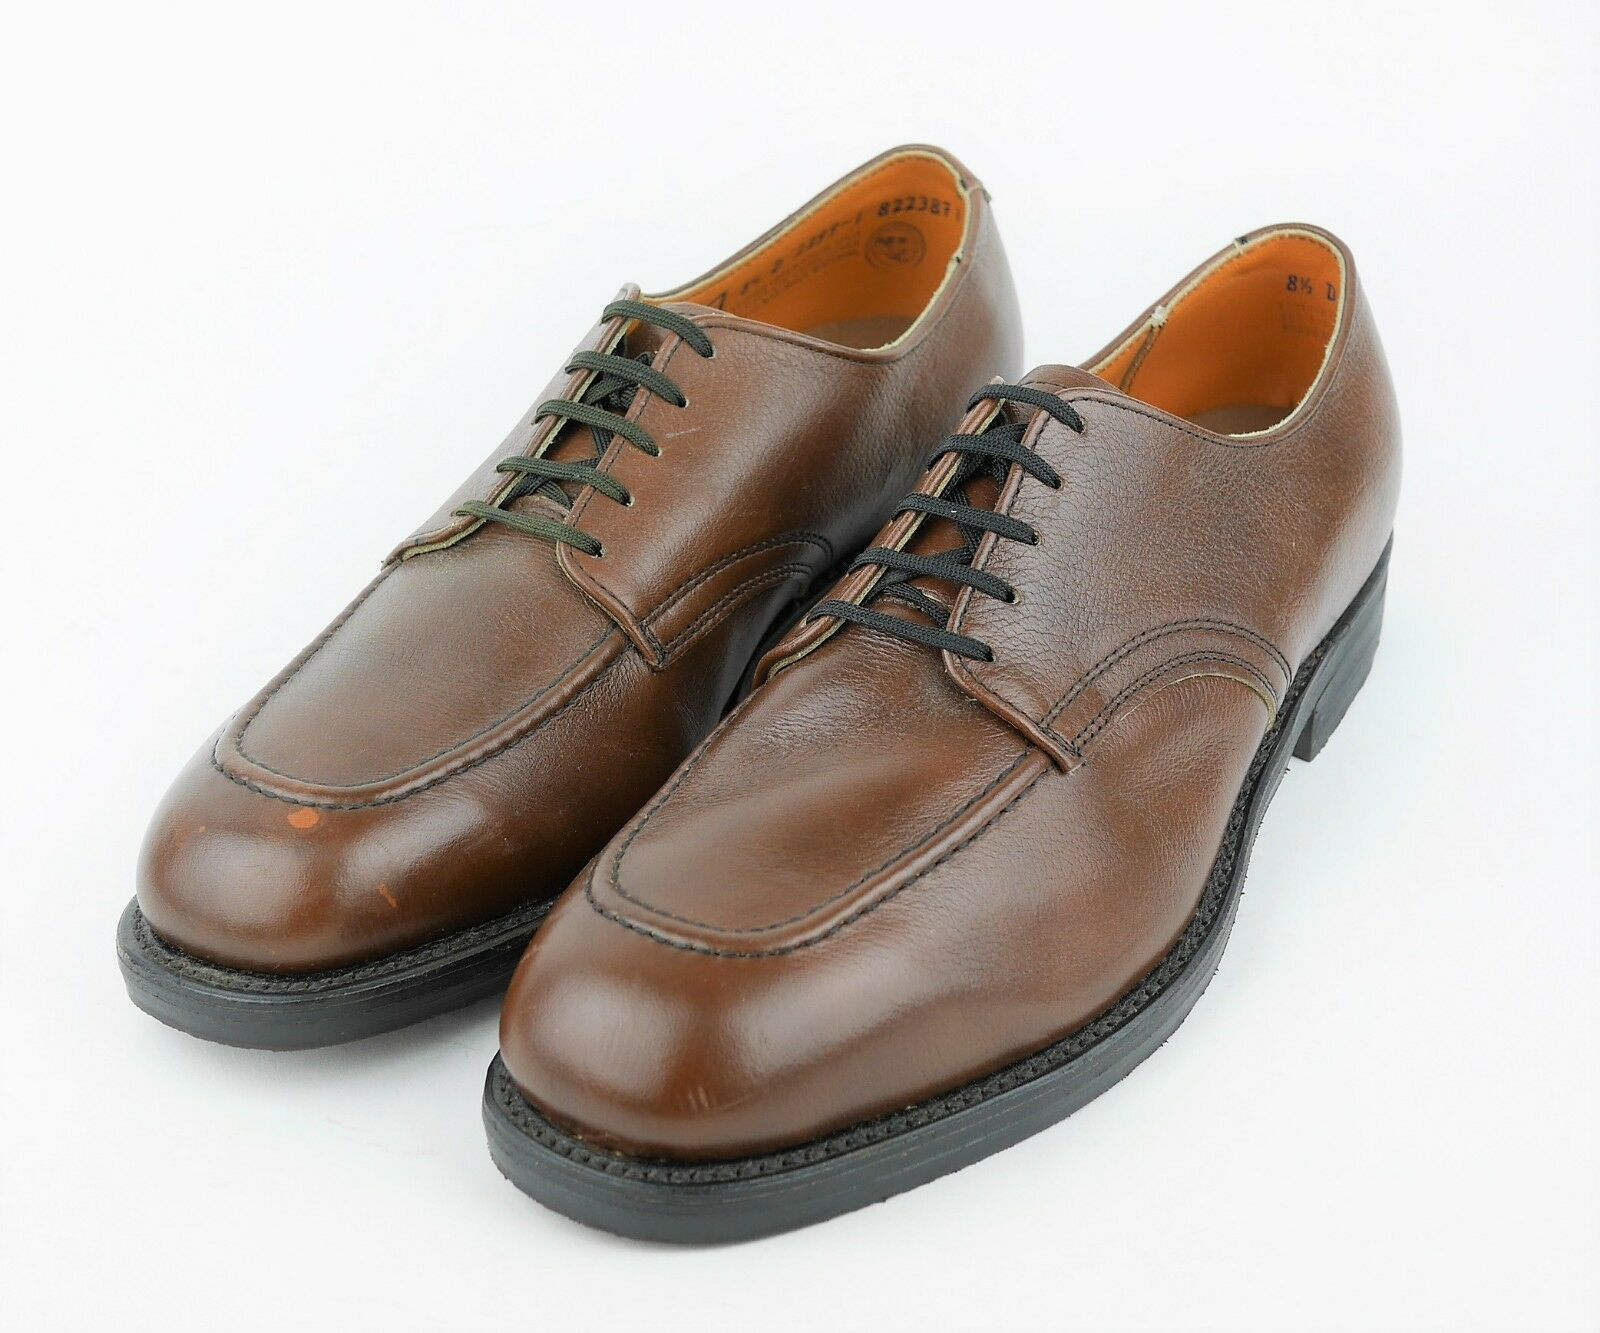 RED WING Men's 8.5 - BROWN PEBBLED LEATHER OXFORDS STEEL TOE LACE UP WORK SHOES